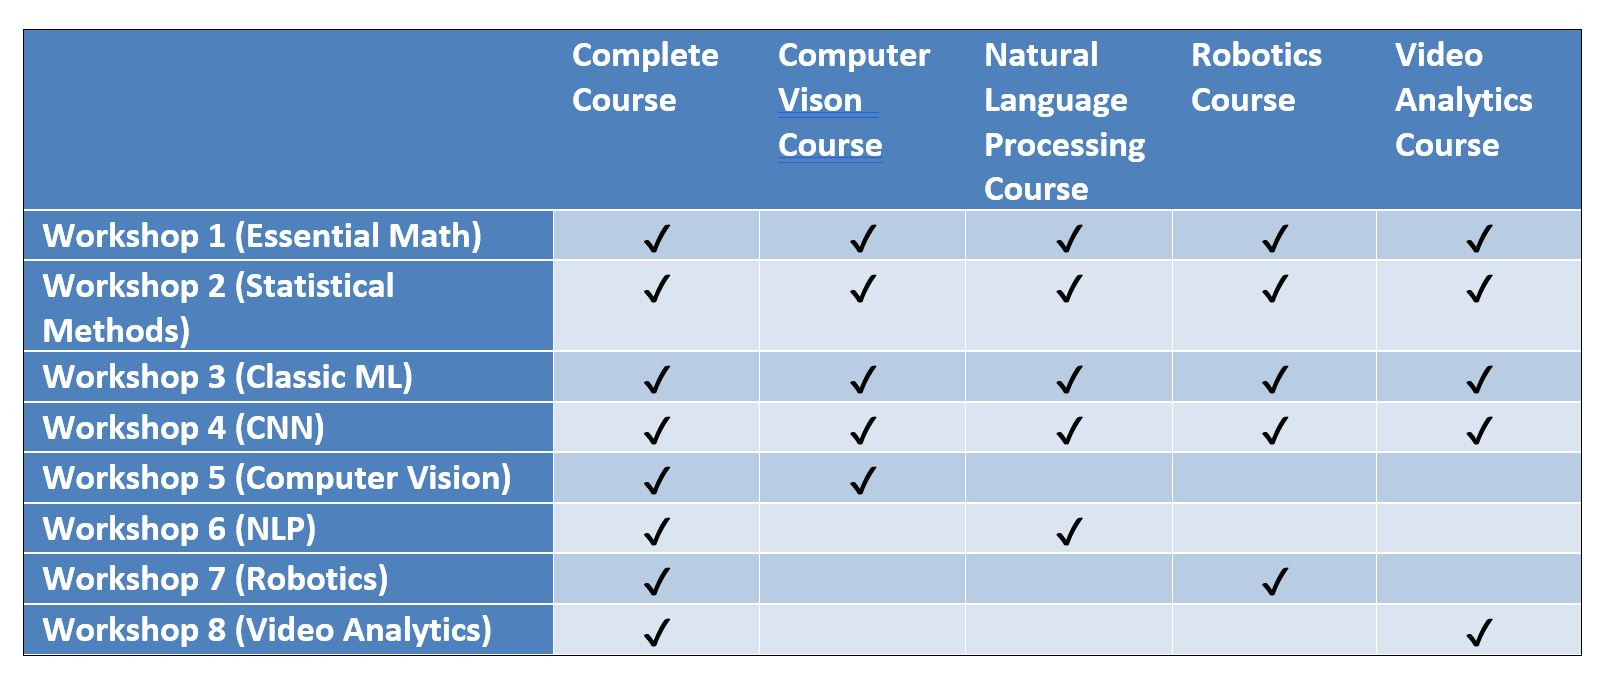 Complete course and customized courses